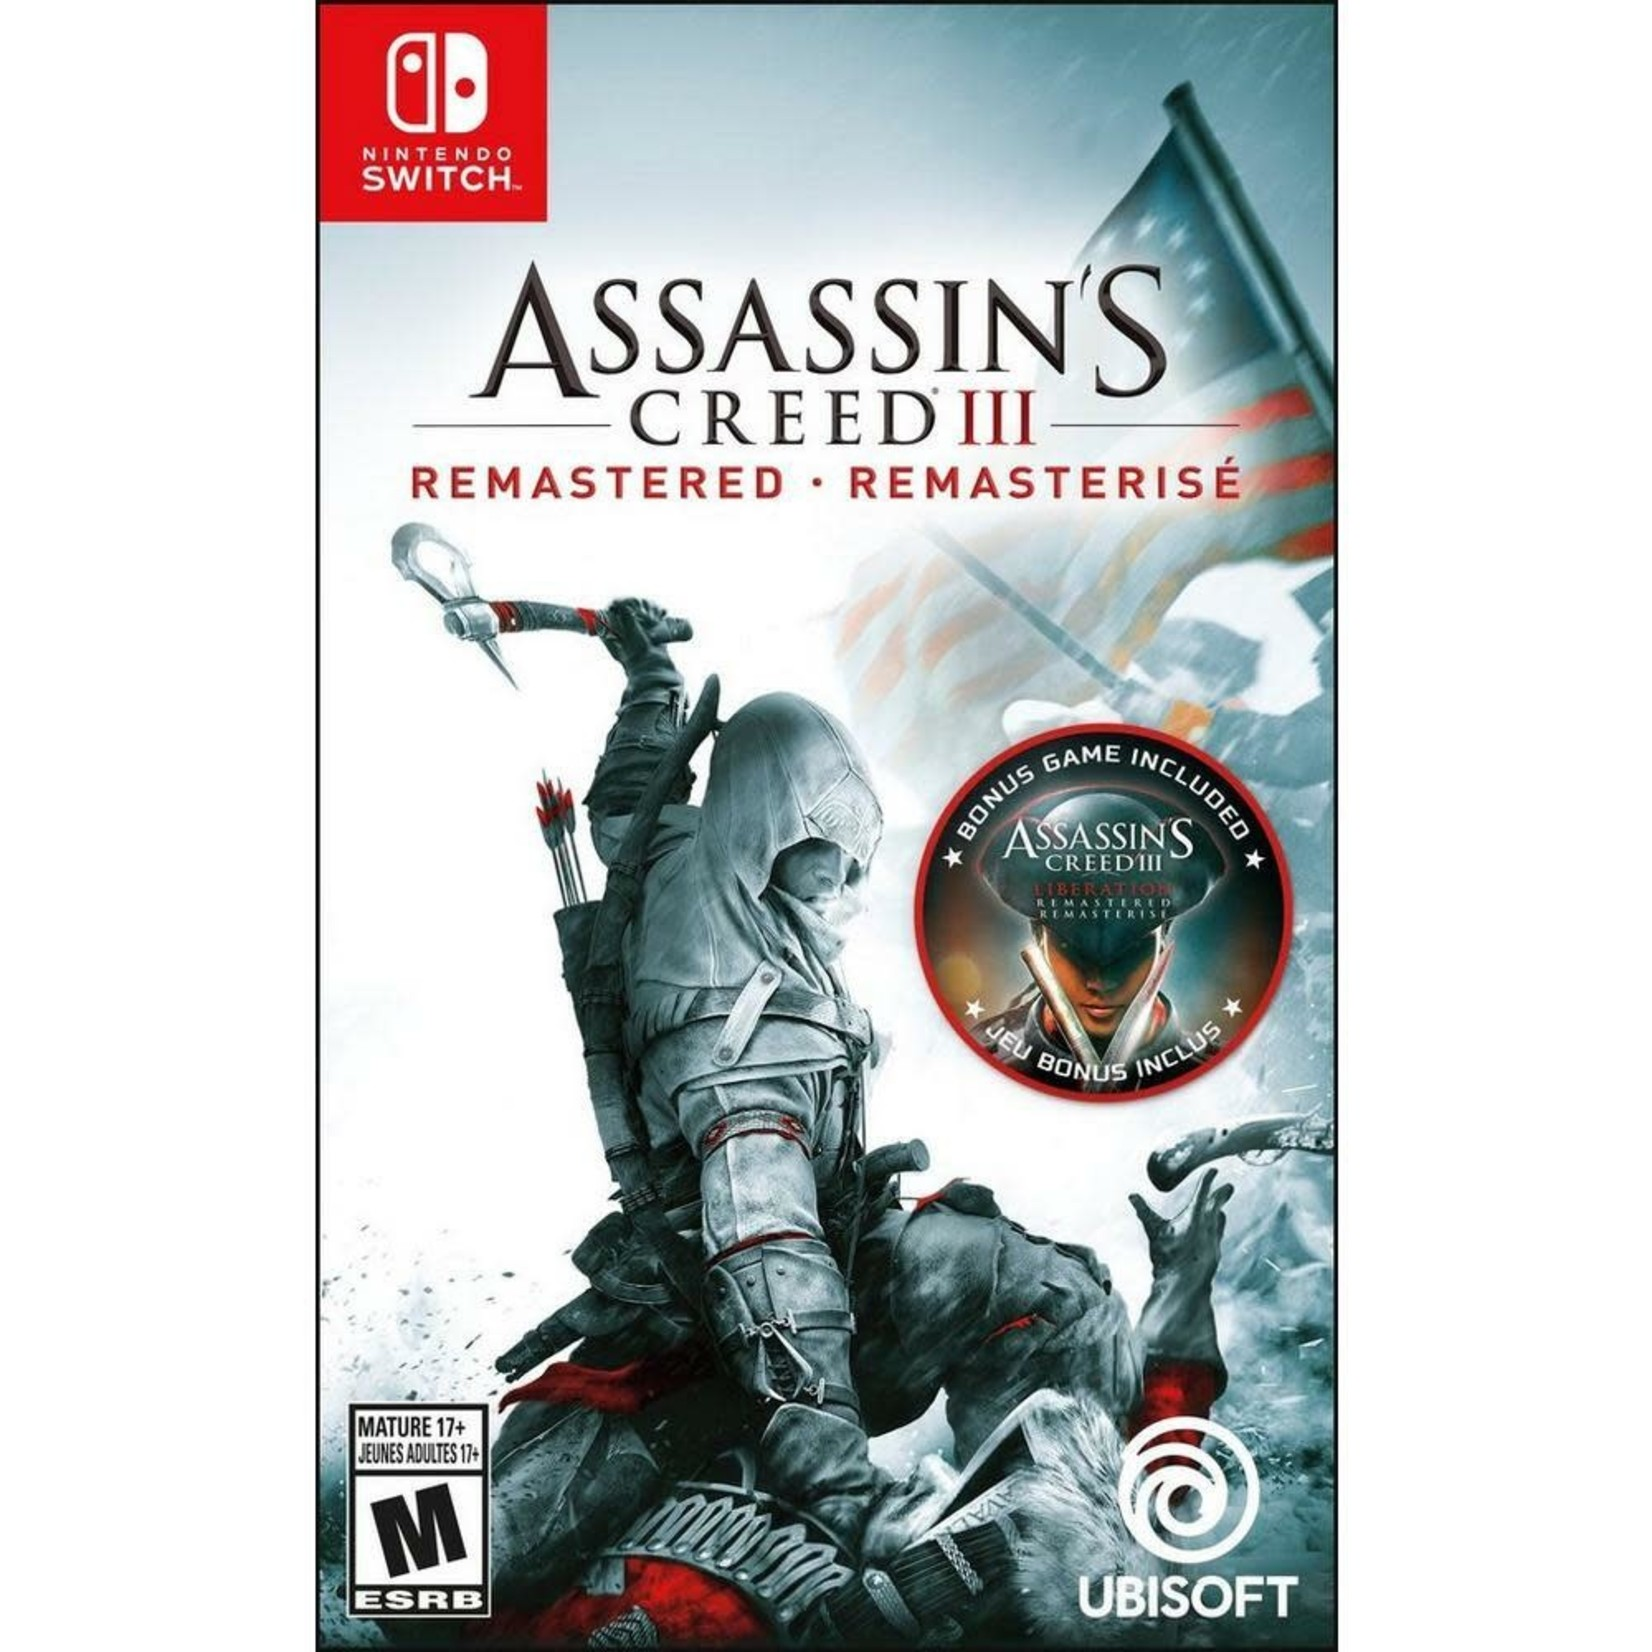 SWITCHU-Assassin's Creed III Remastered